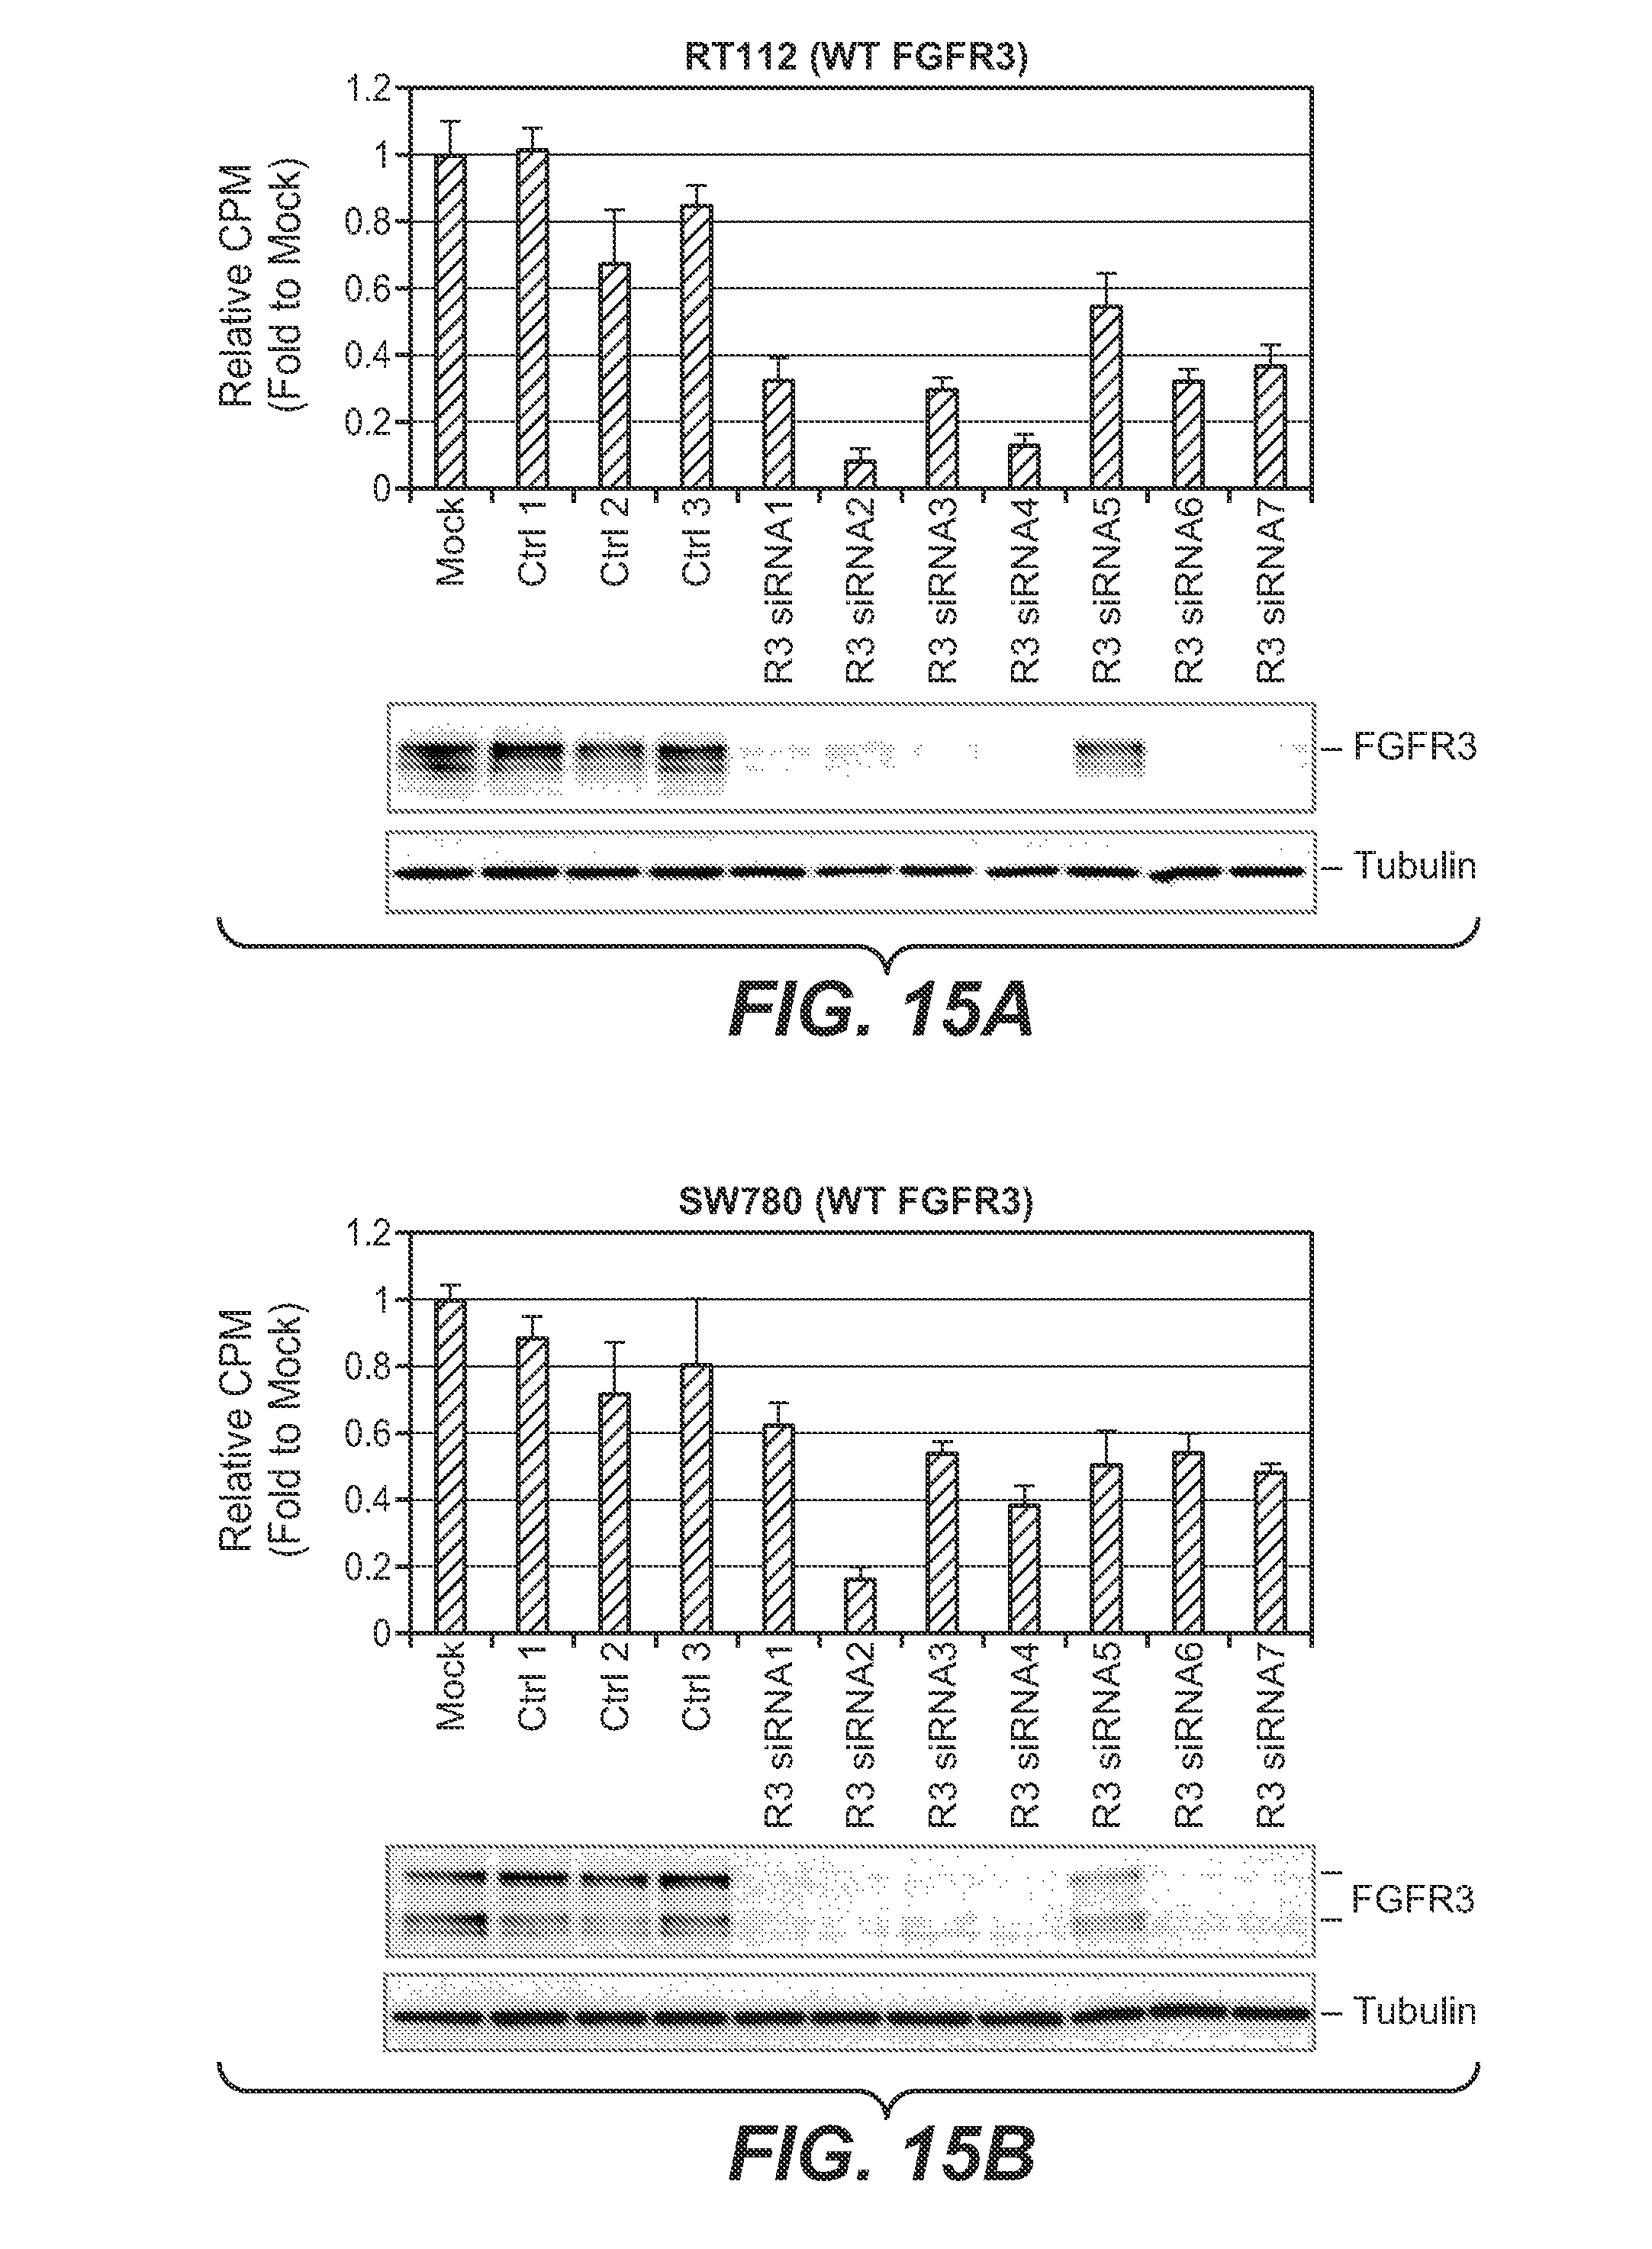 fgfr3 function The fgfr3 gene encodes fibroblast growth factor 3, one of a family of proteins involved in multiple processes such as regulation of cell growth and division.